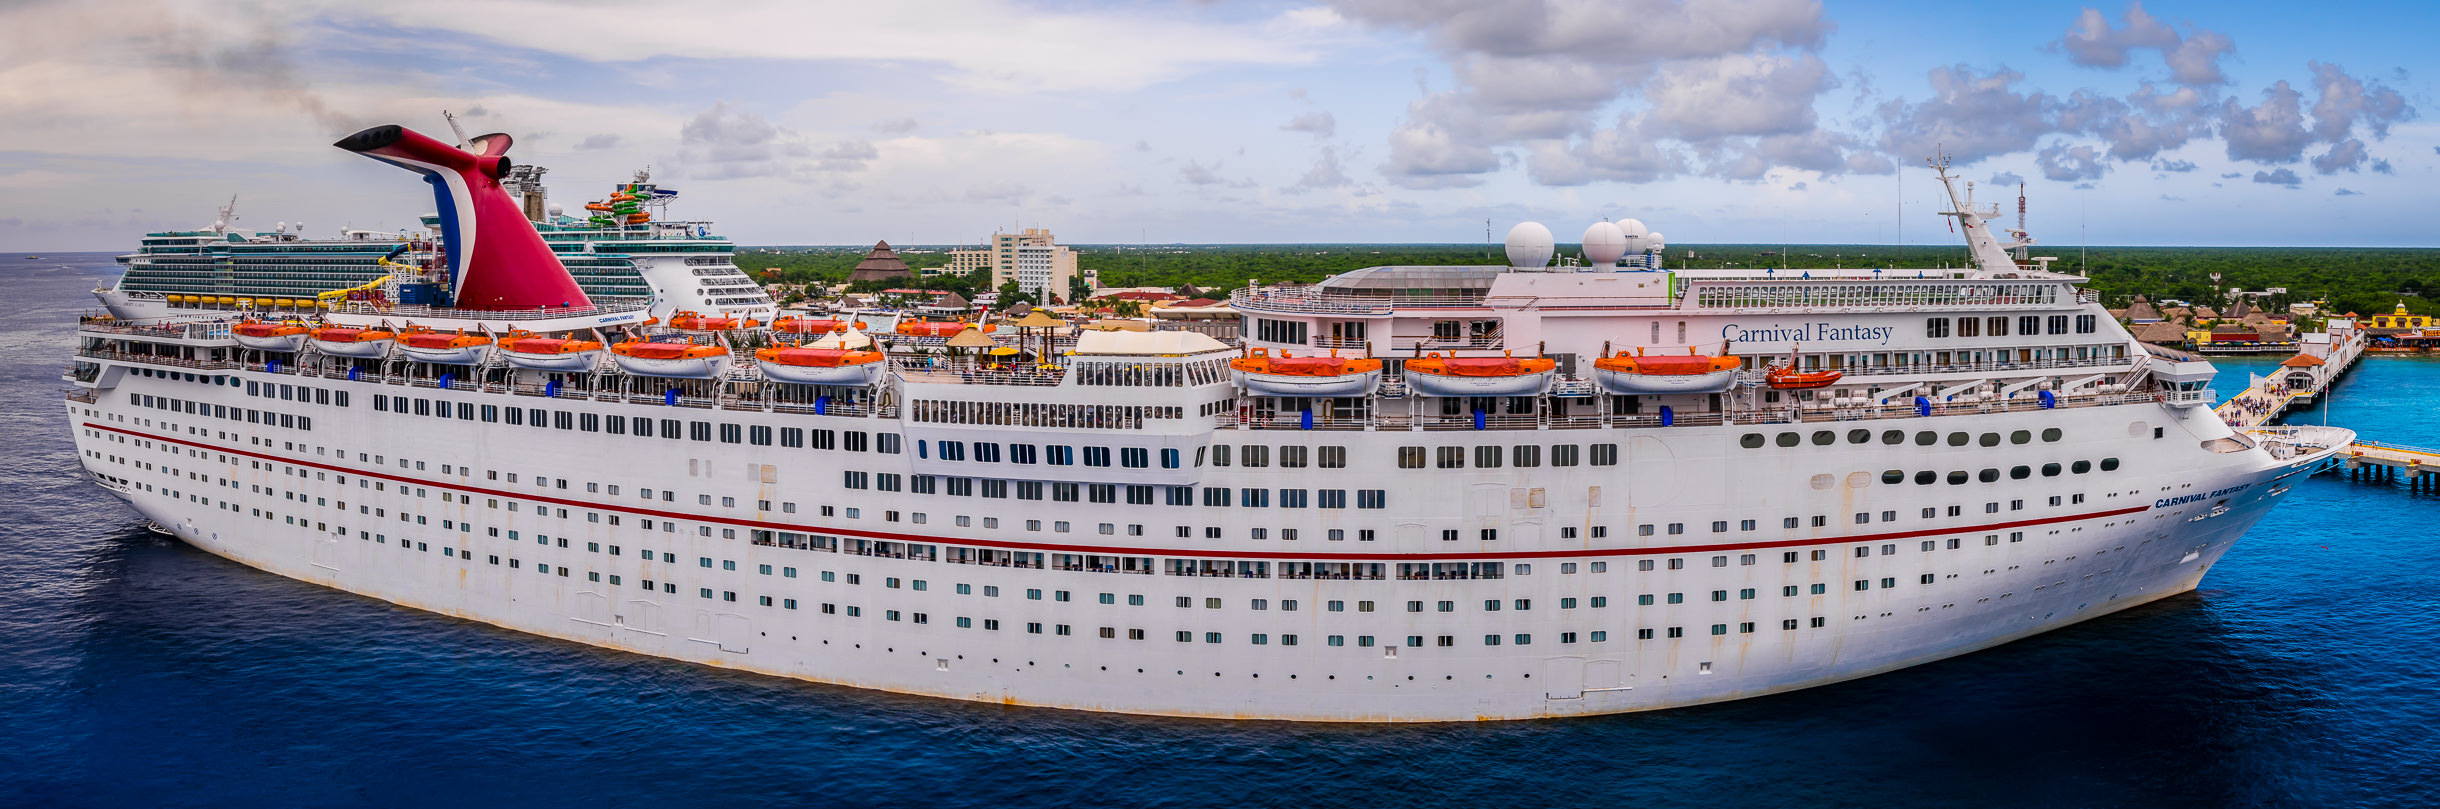 A panoramic view of the cruise ship Carnival Fantasy, docked in Cozumel, Mexico.